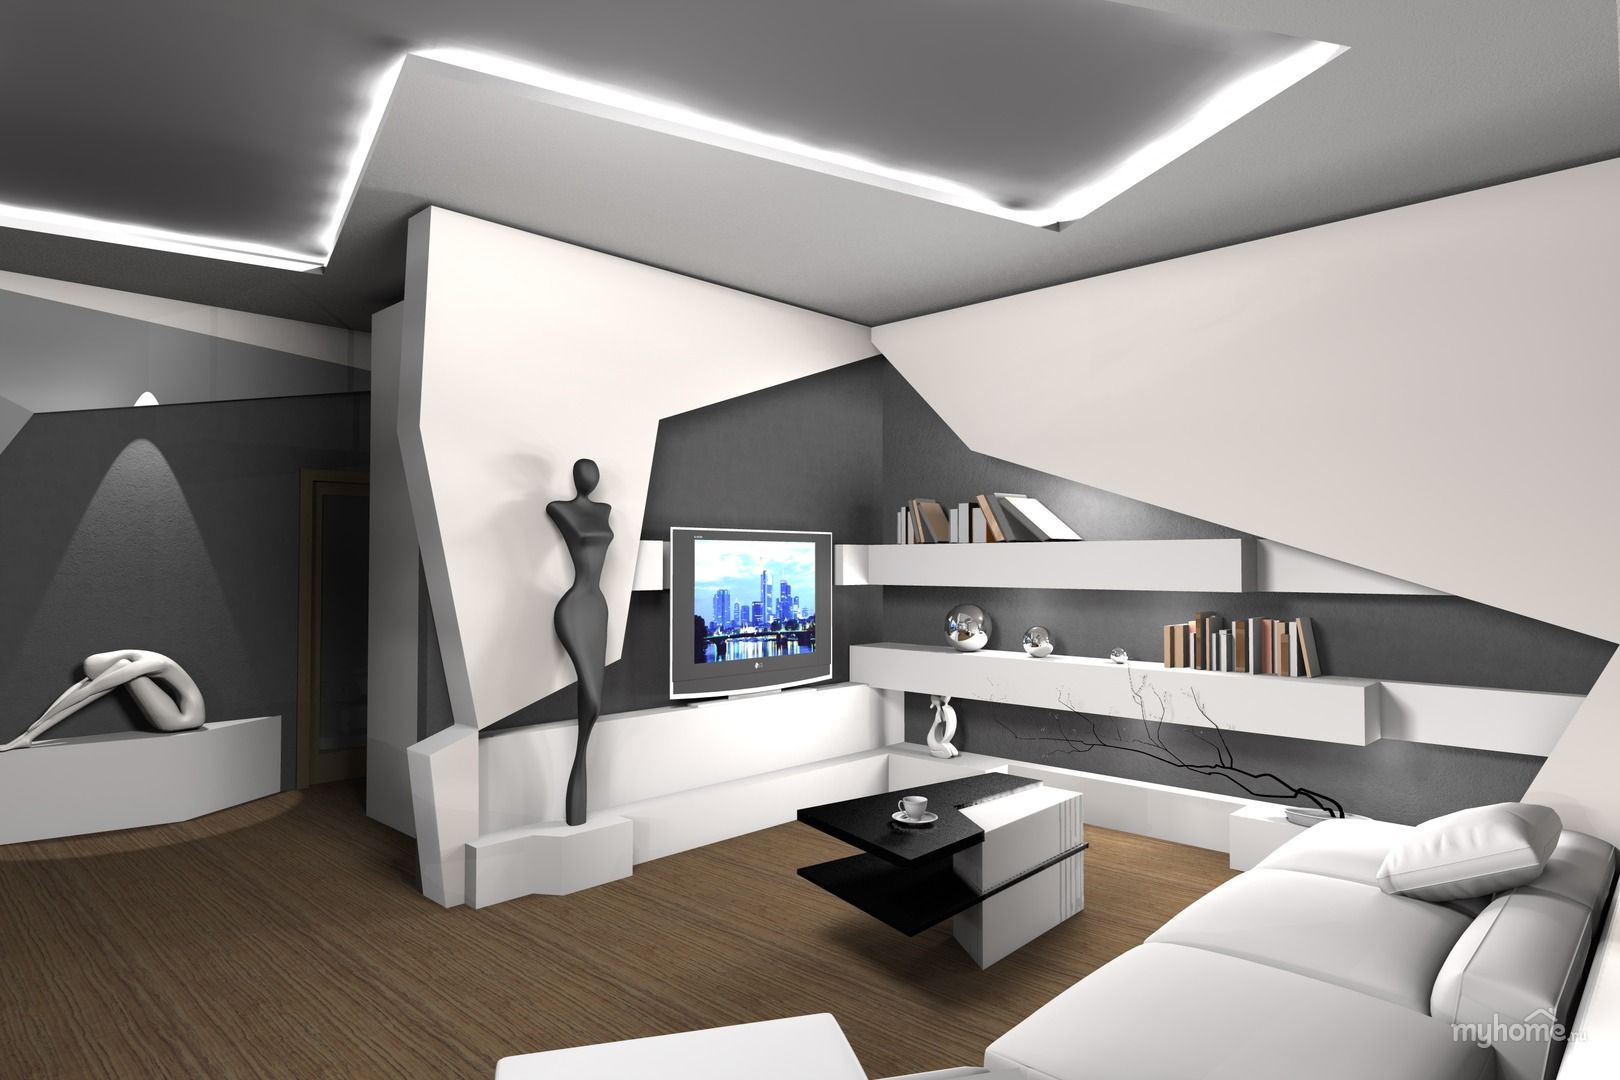 Futuristic interior | Source: smalldesignideas.com